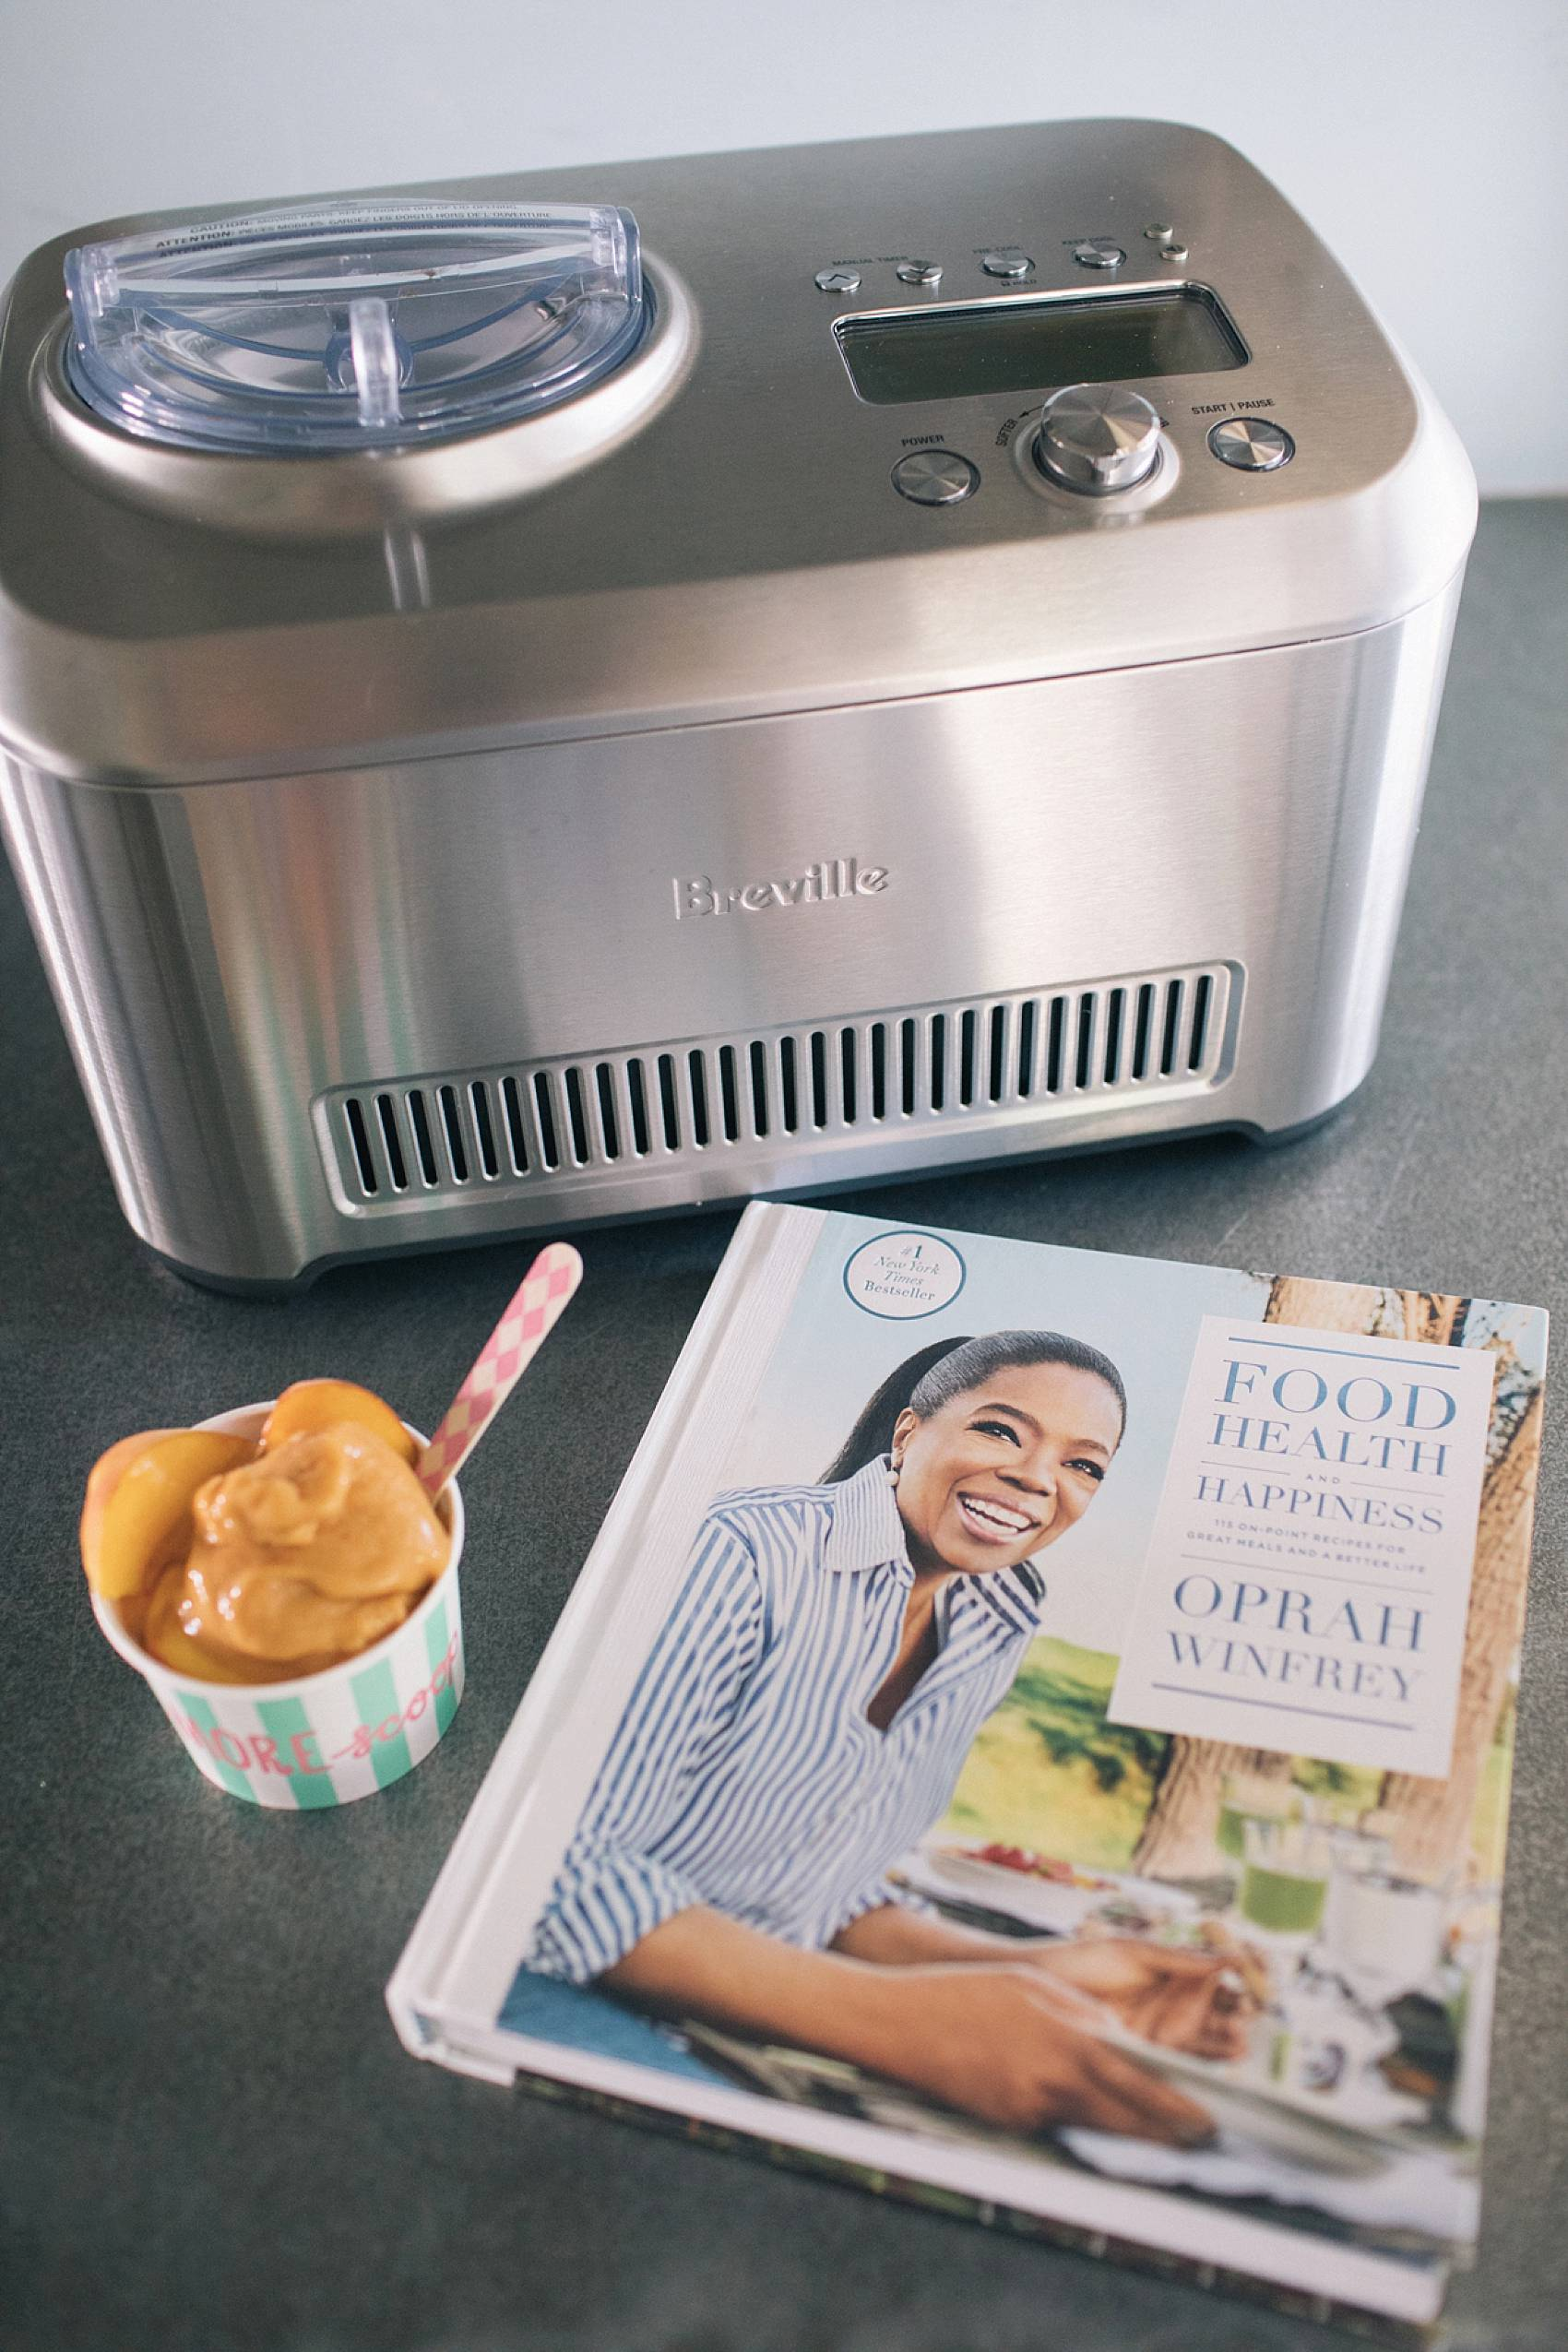 breville smart scoop ice cream maker with Oprah Winfrey cook book